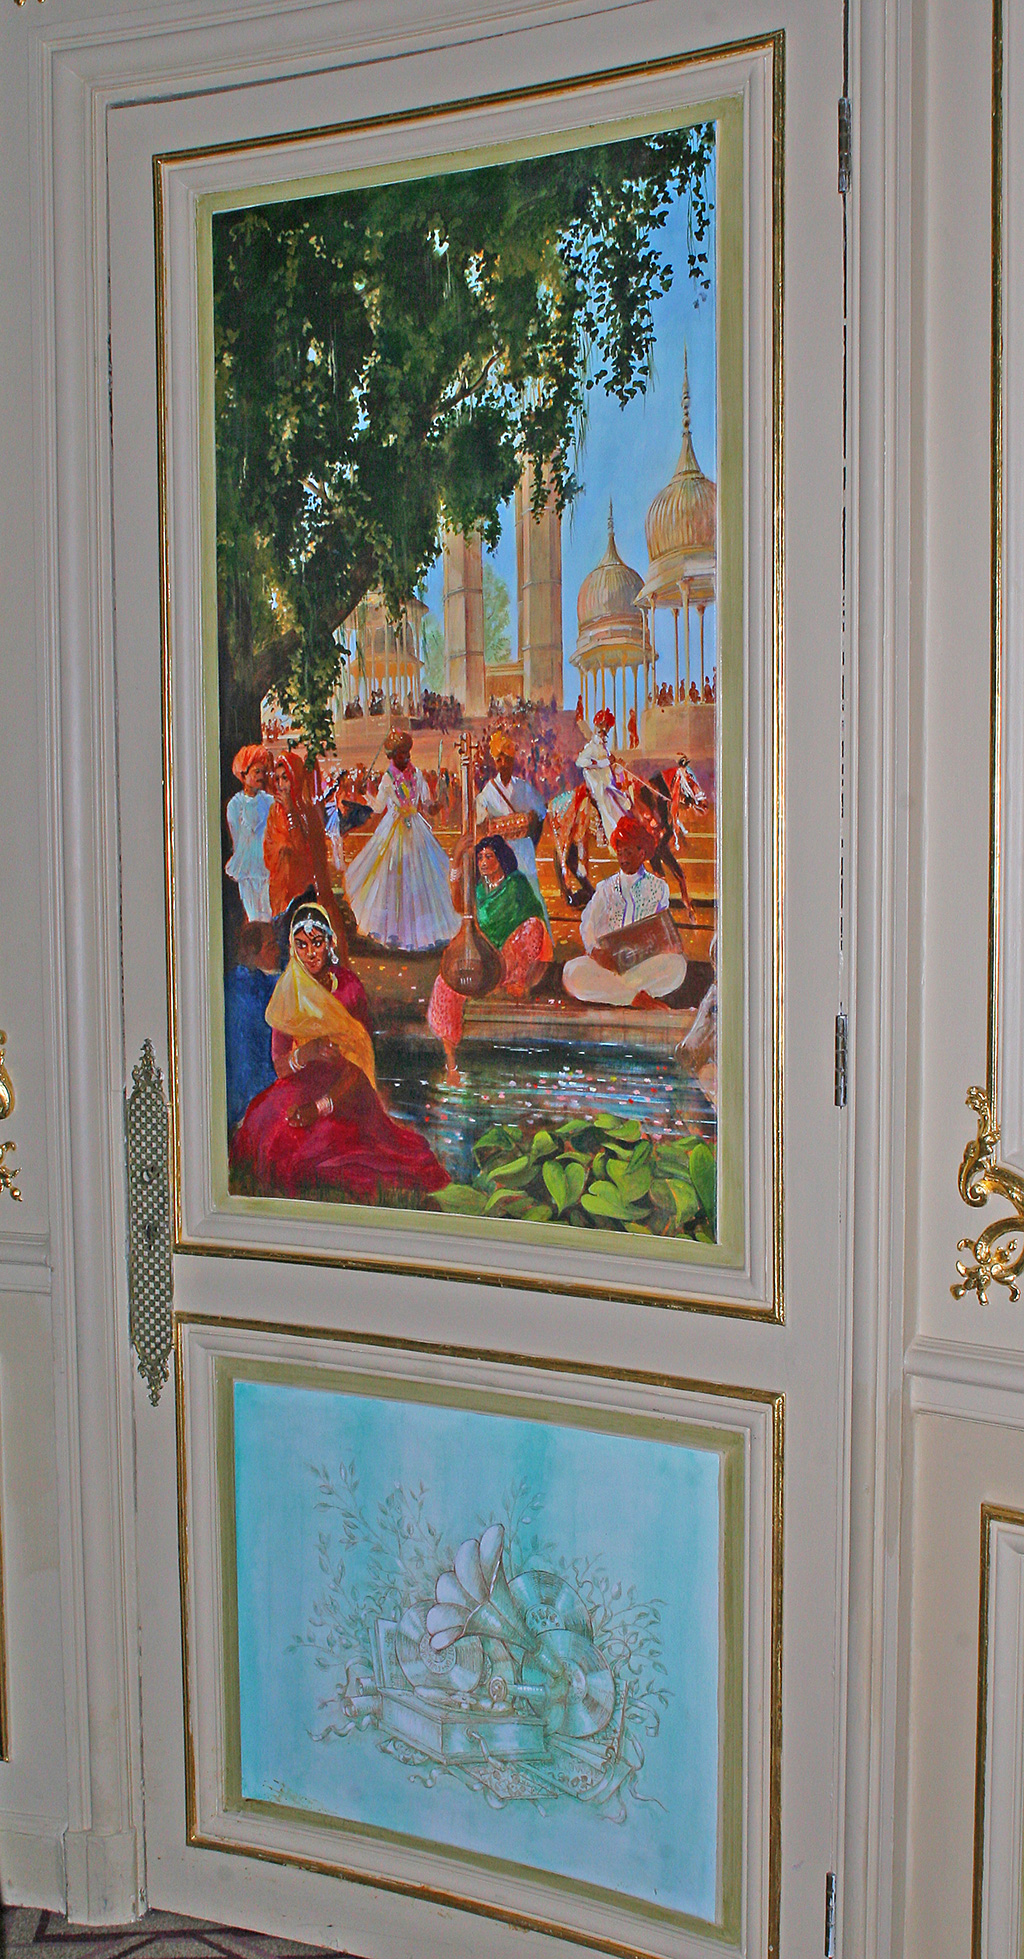 Mural depicting music around the world for the Great Gallery at the RAC Club, Pall Mall, London, detail.